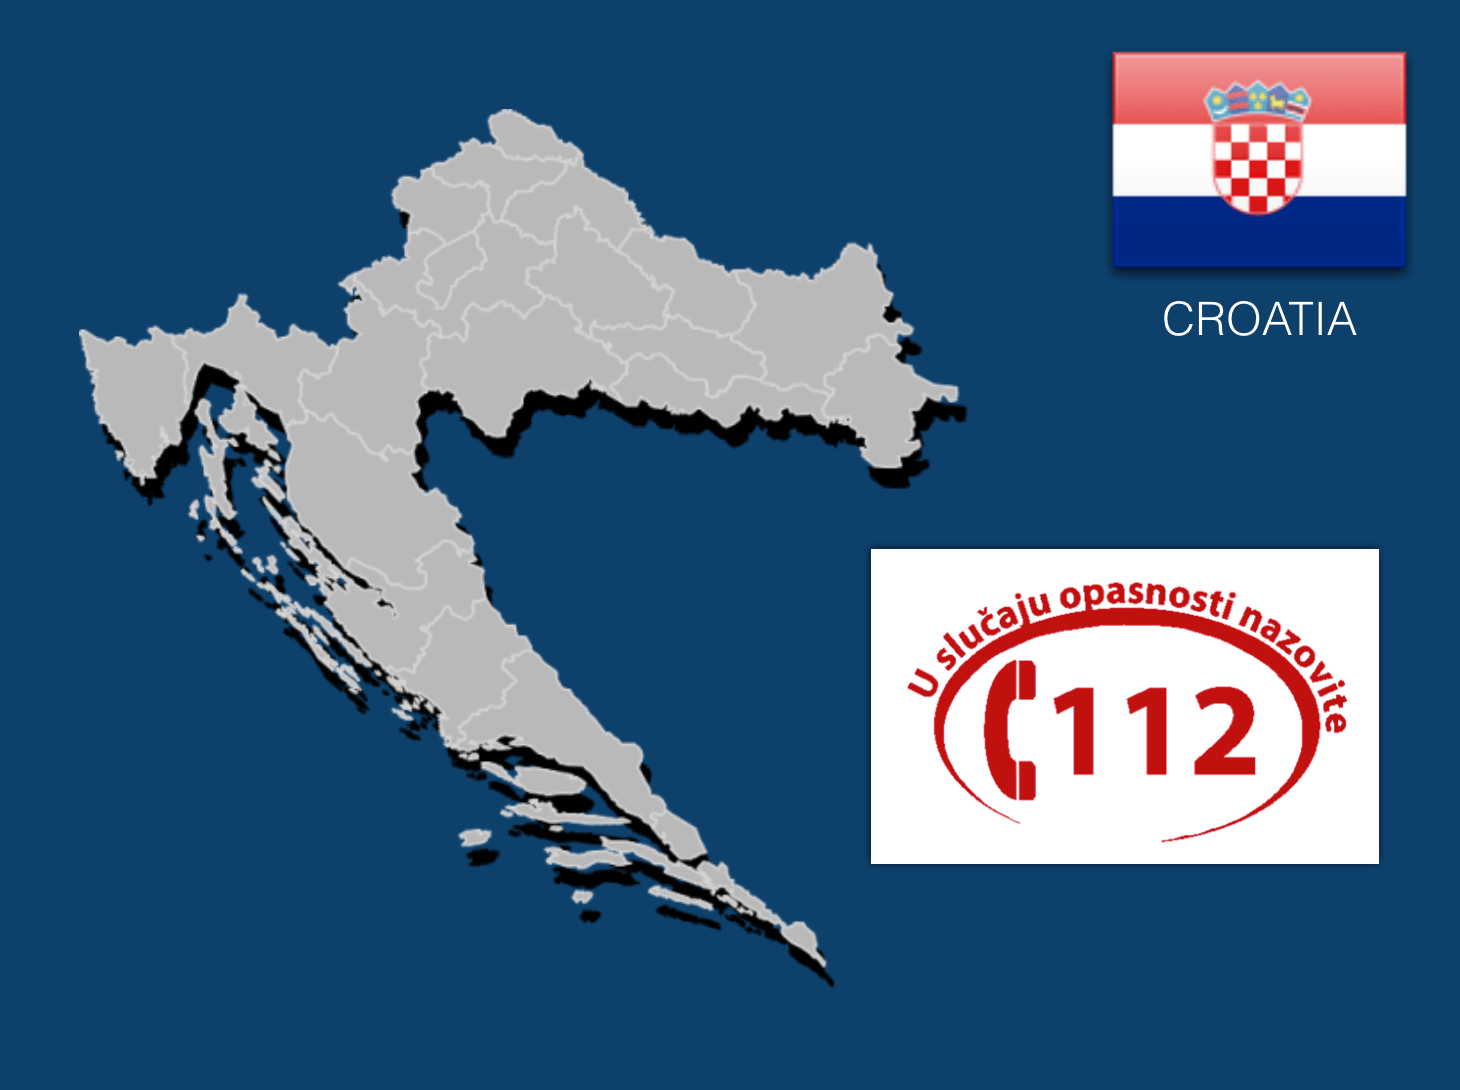 Croatia: Ambulance and Emergency Medical Services